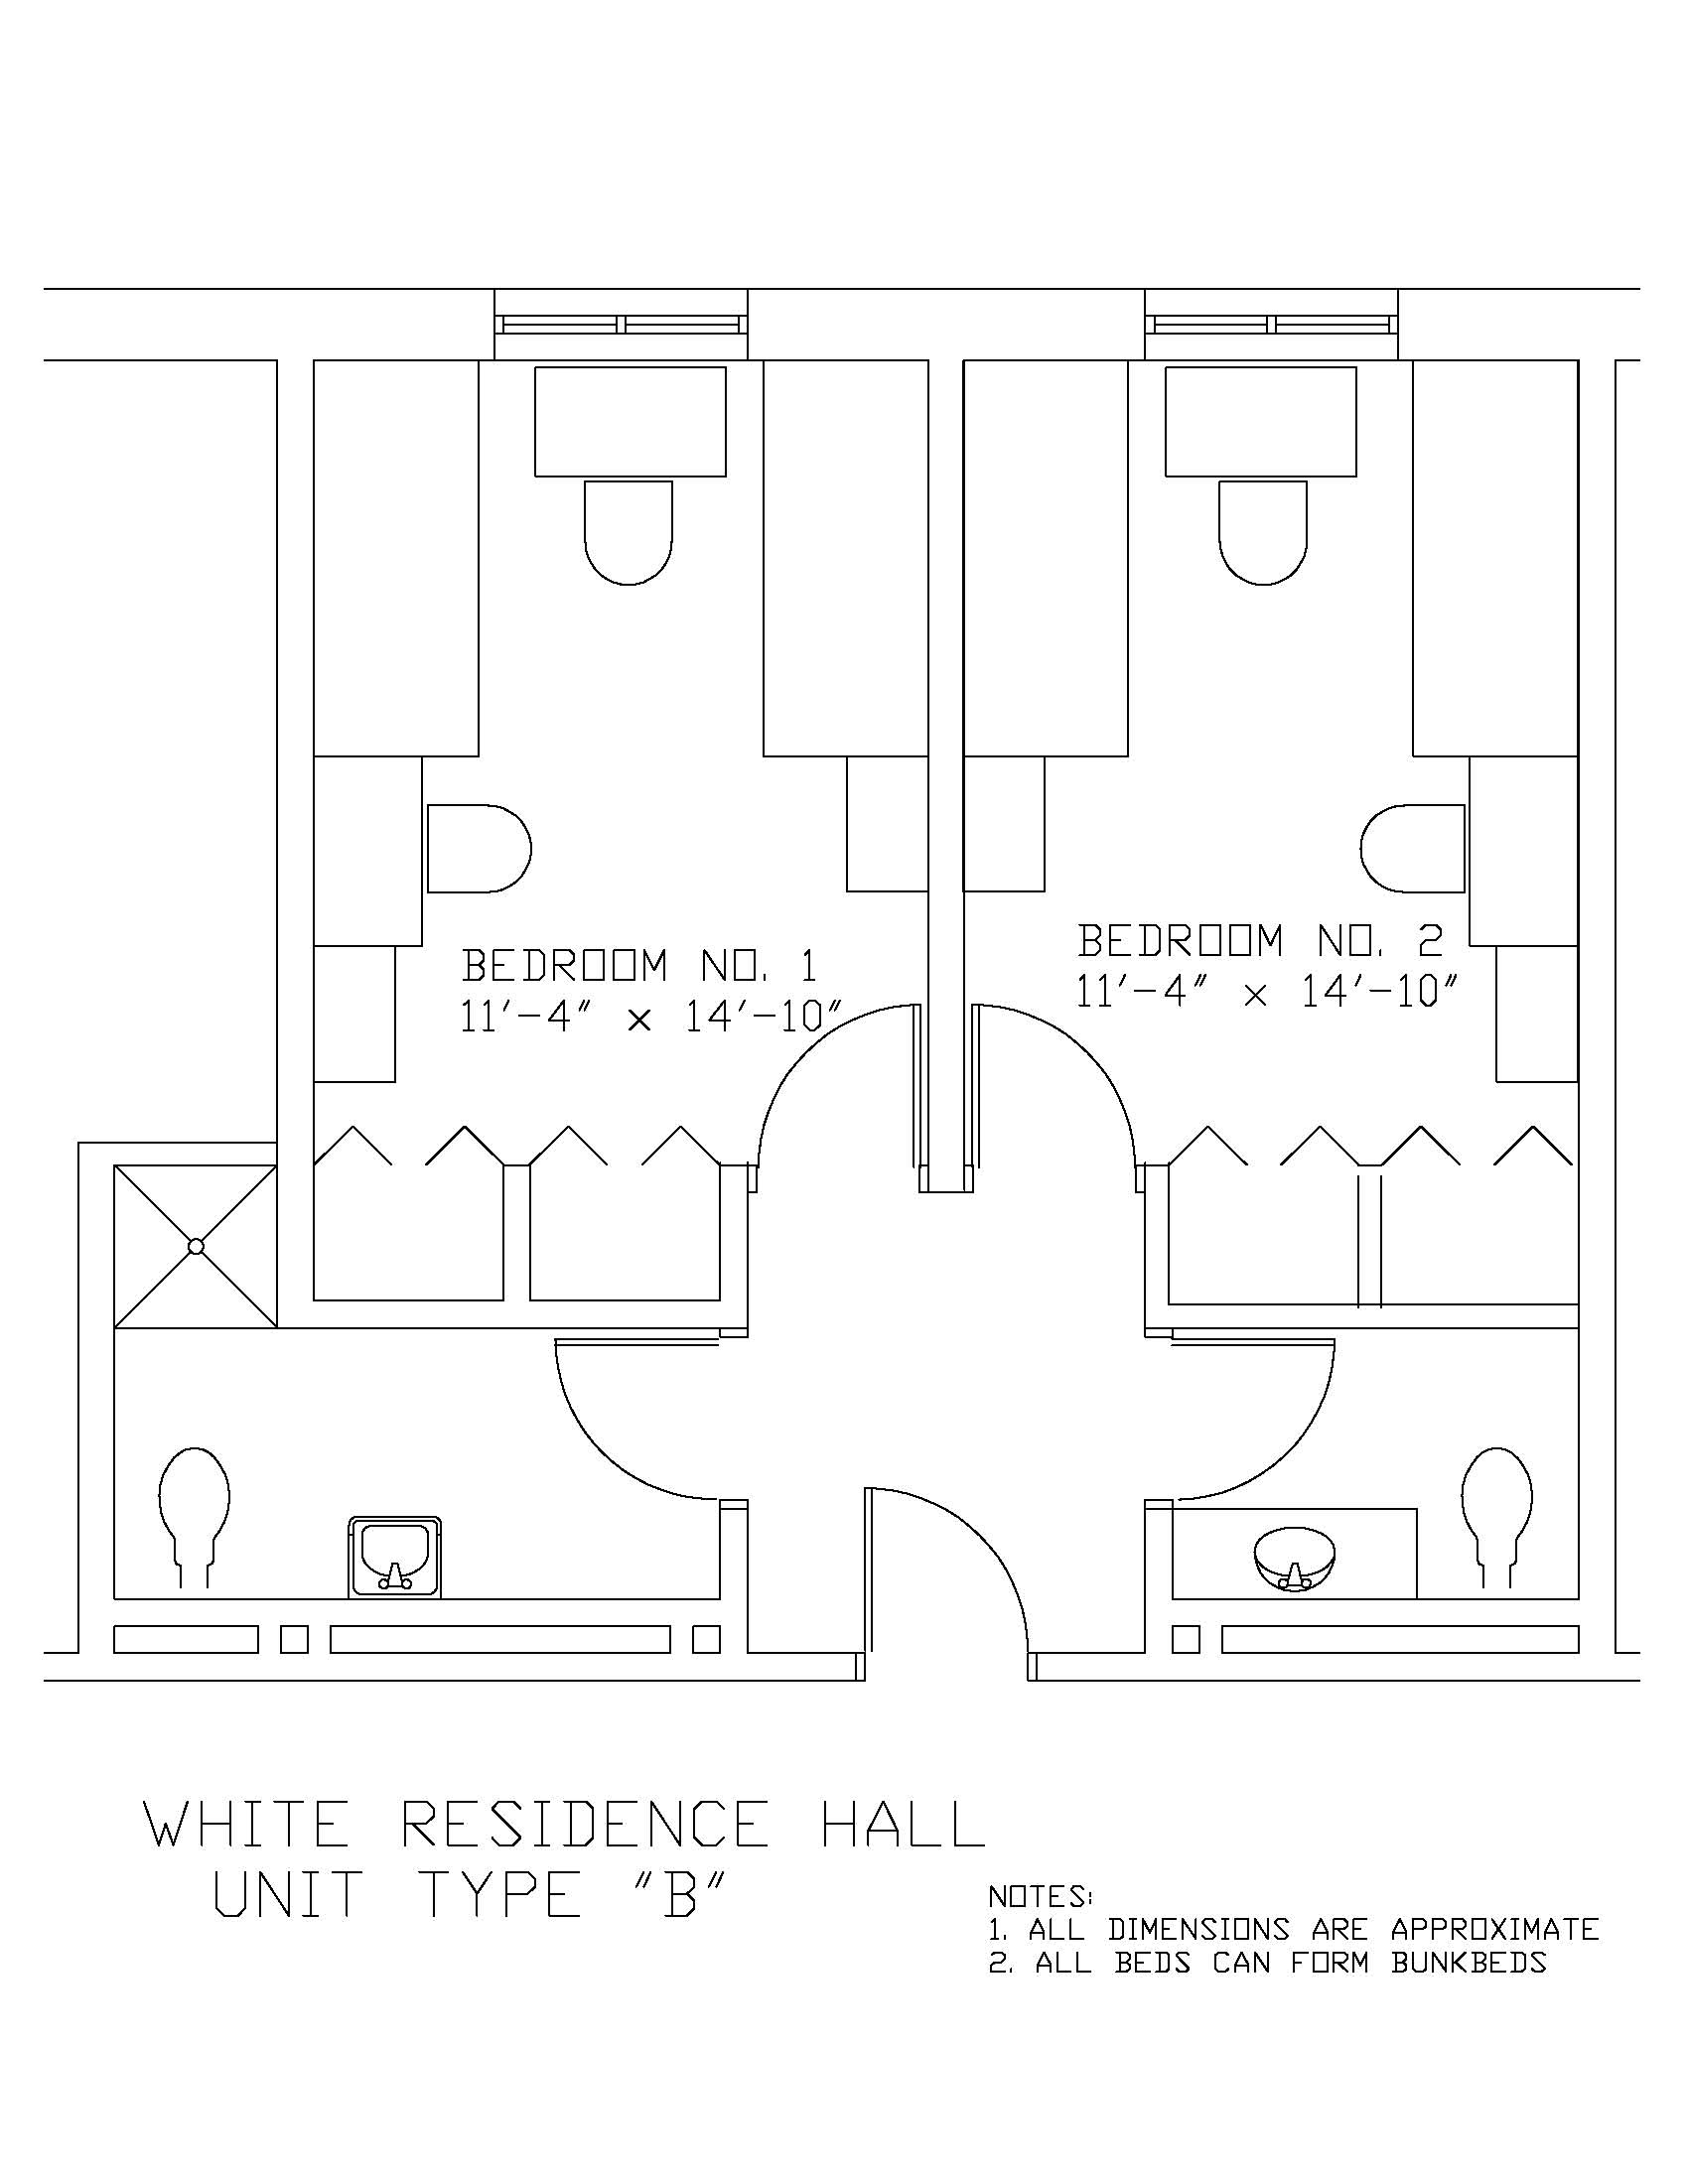 James S. White Hall: Type B